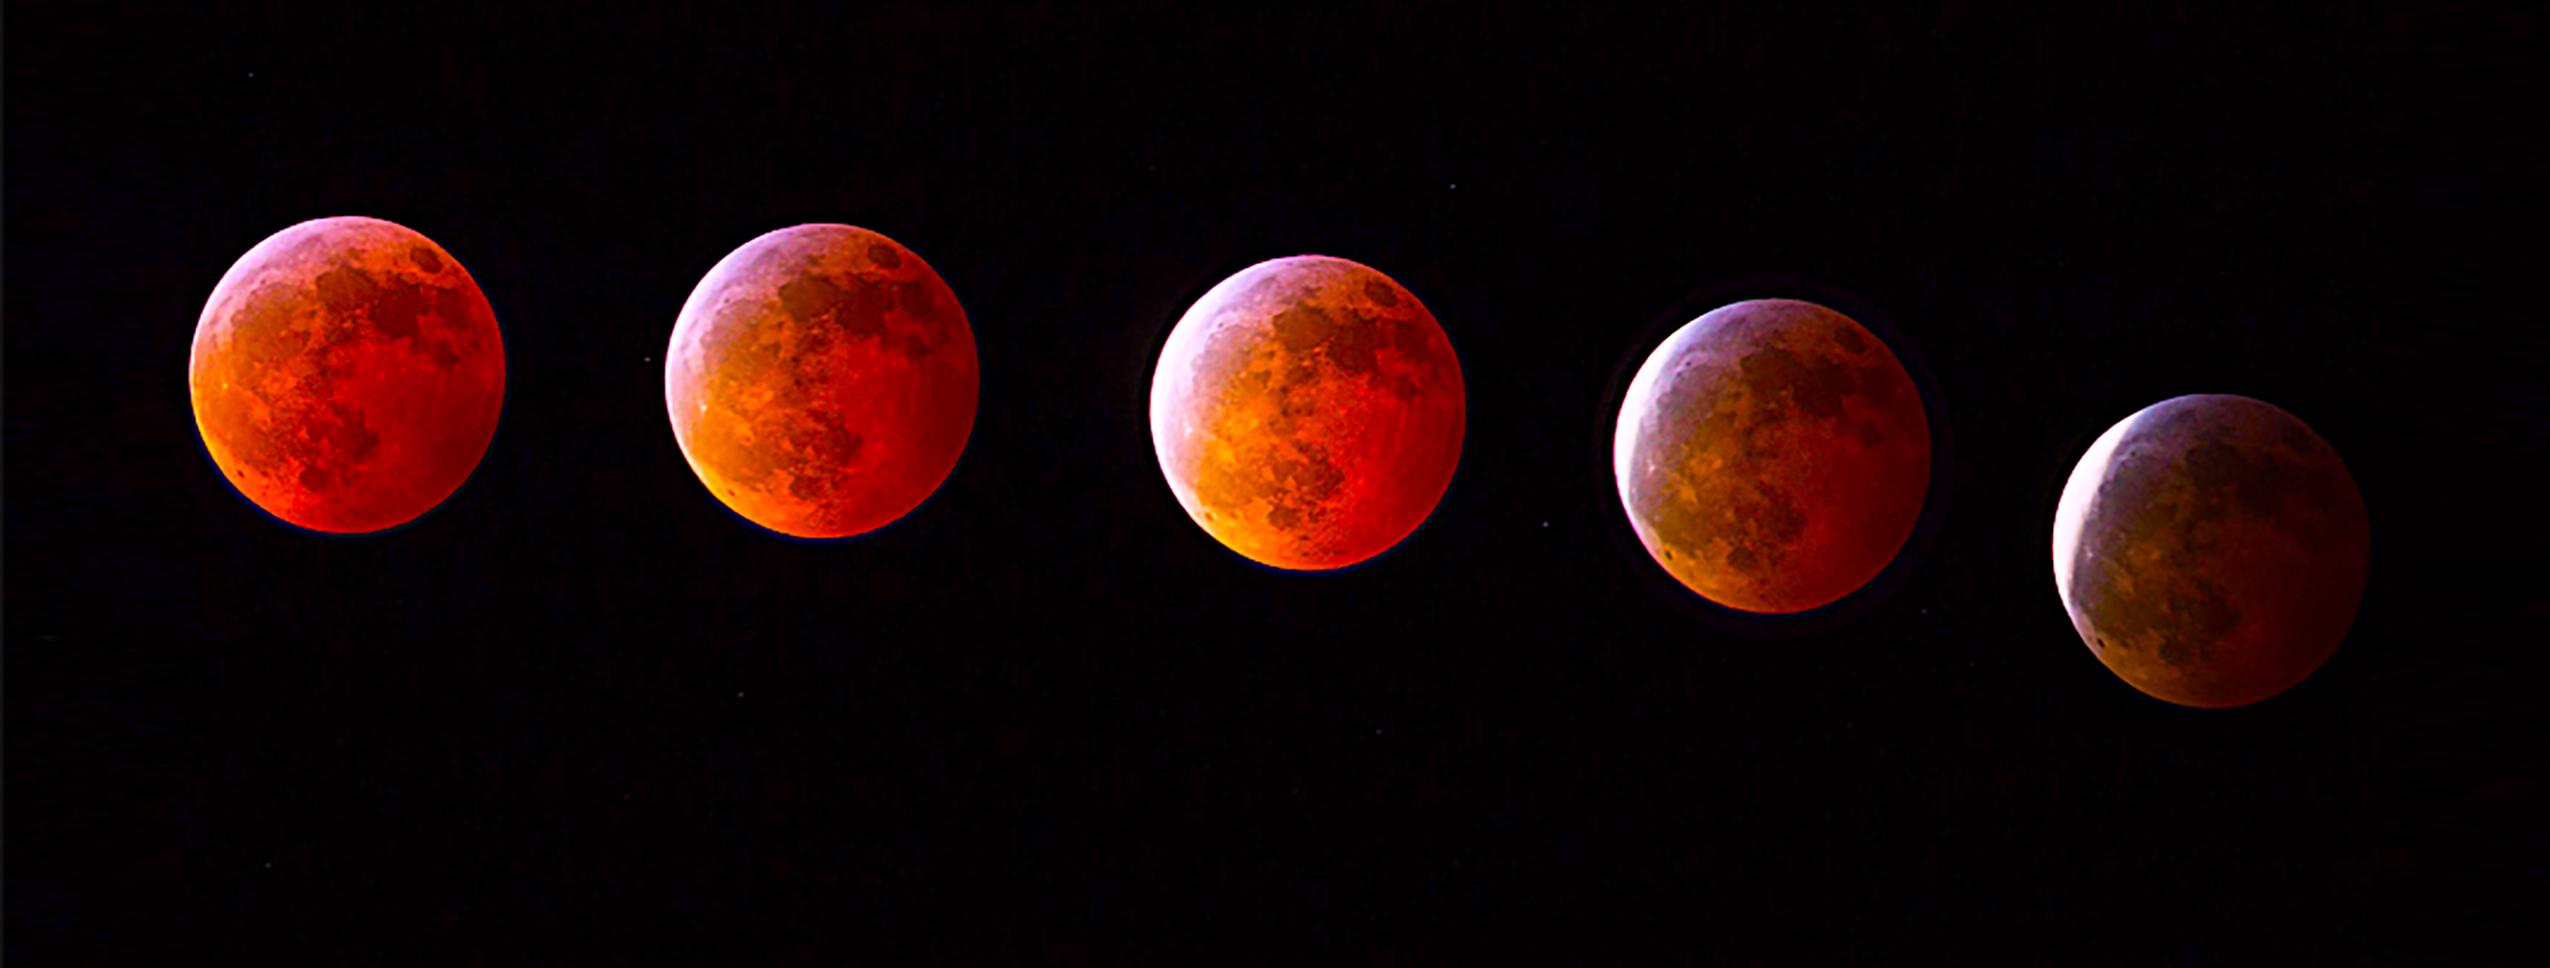 This composite of exposures documented 24 memorable minutes from Brook Valley in Pitt County, during last year's full lunar eclipse. Photo by P. Gemperline.